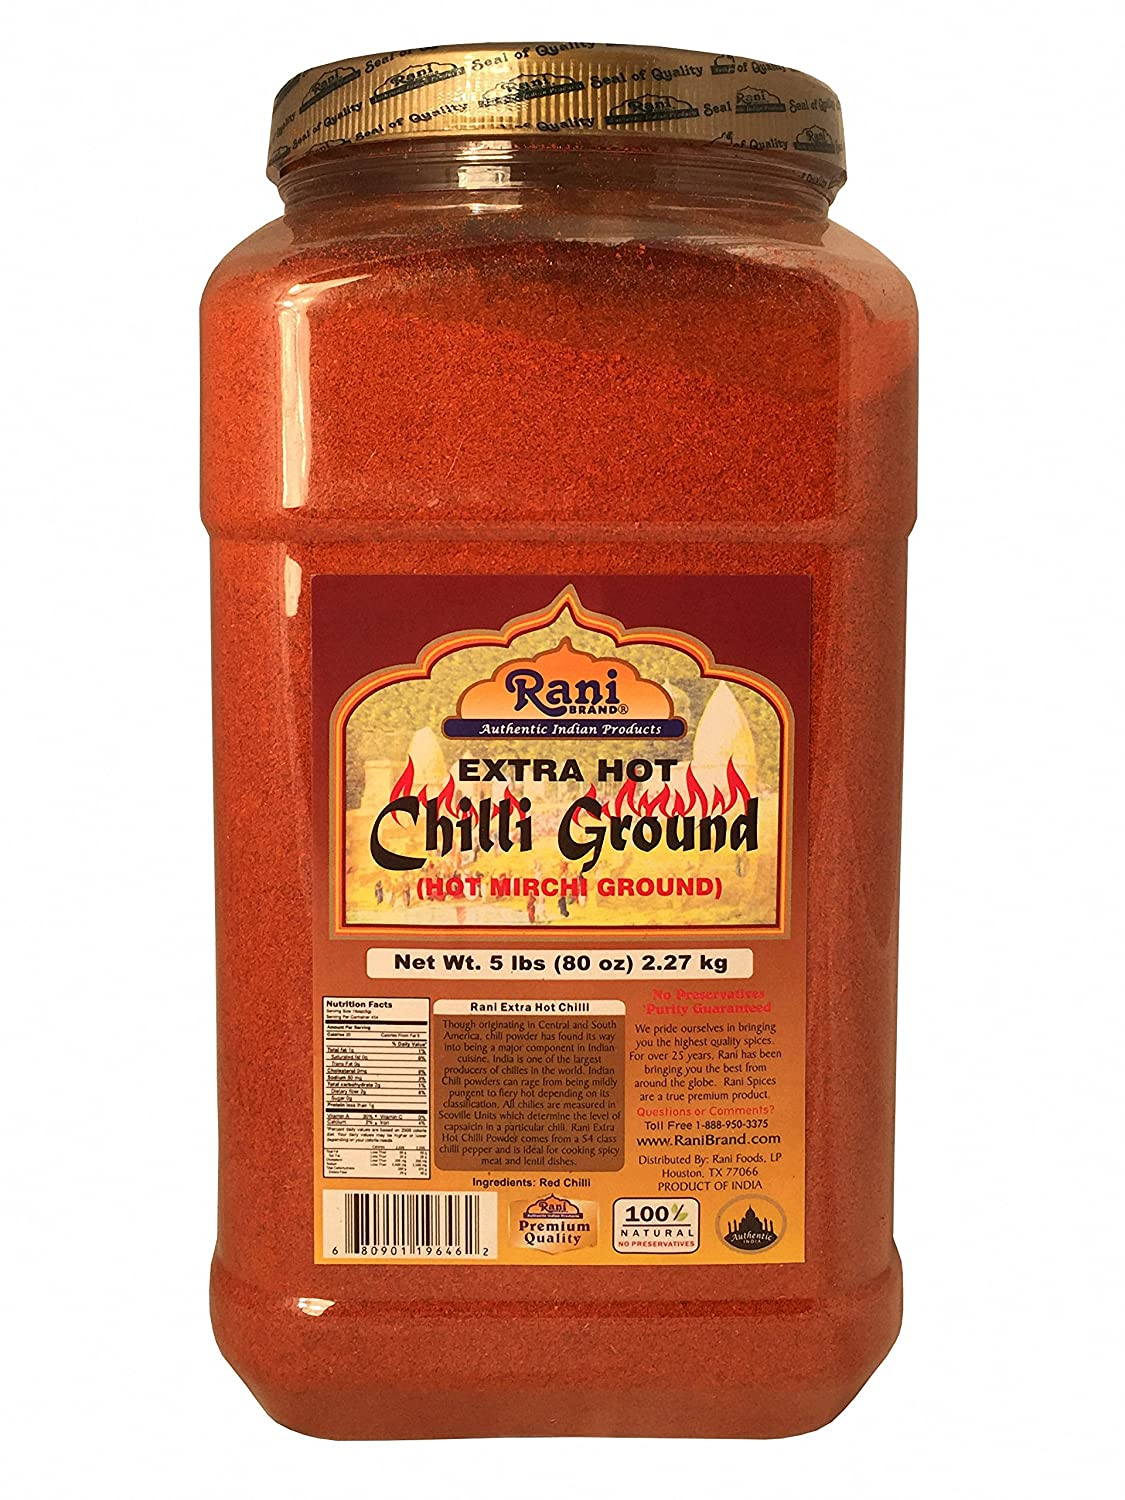 Rani Extra Hot Chilli Powder Indian Spice 5lbs (80oz) Bulk ~ All Natural, No Color added, Gluten Free Ingredients | Vegan | NON-GMO | No Salt or fillers